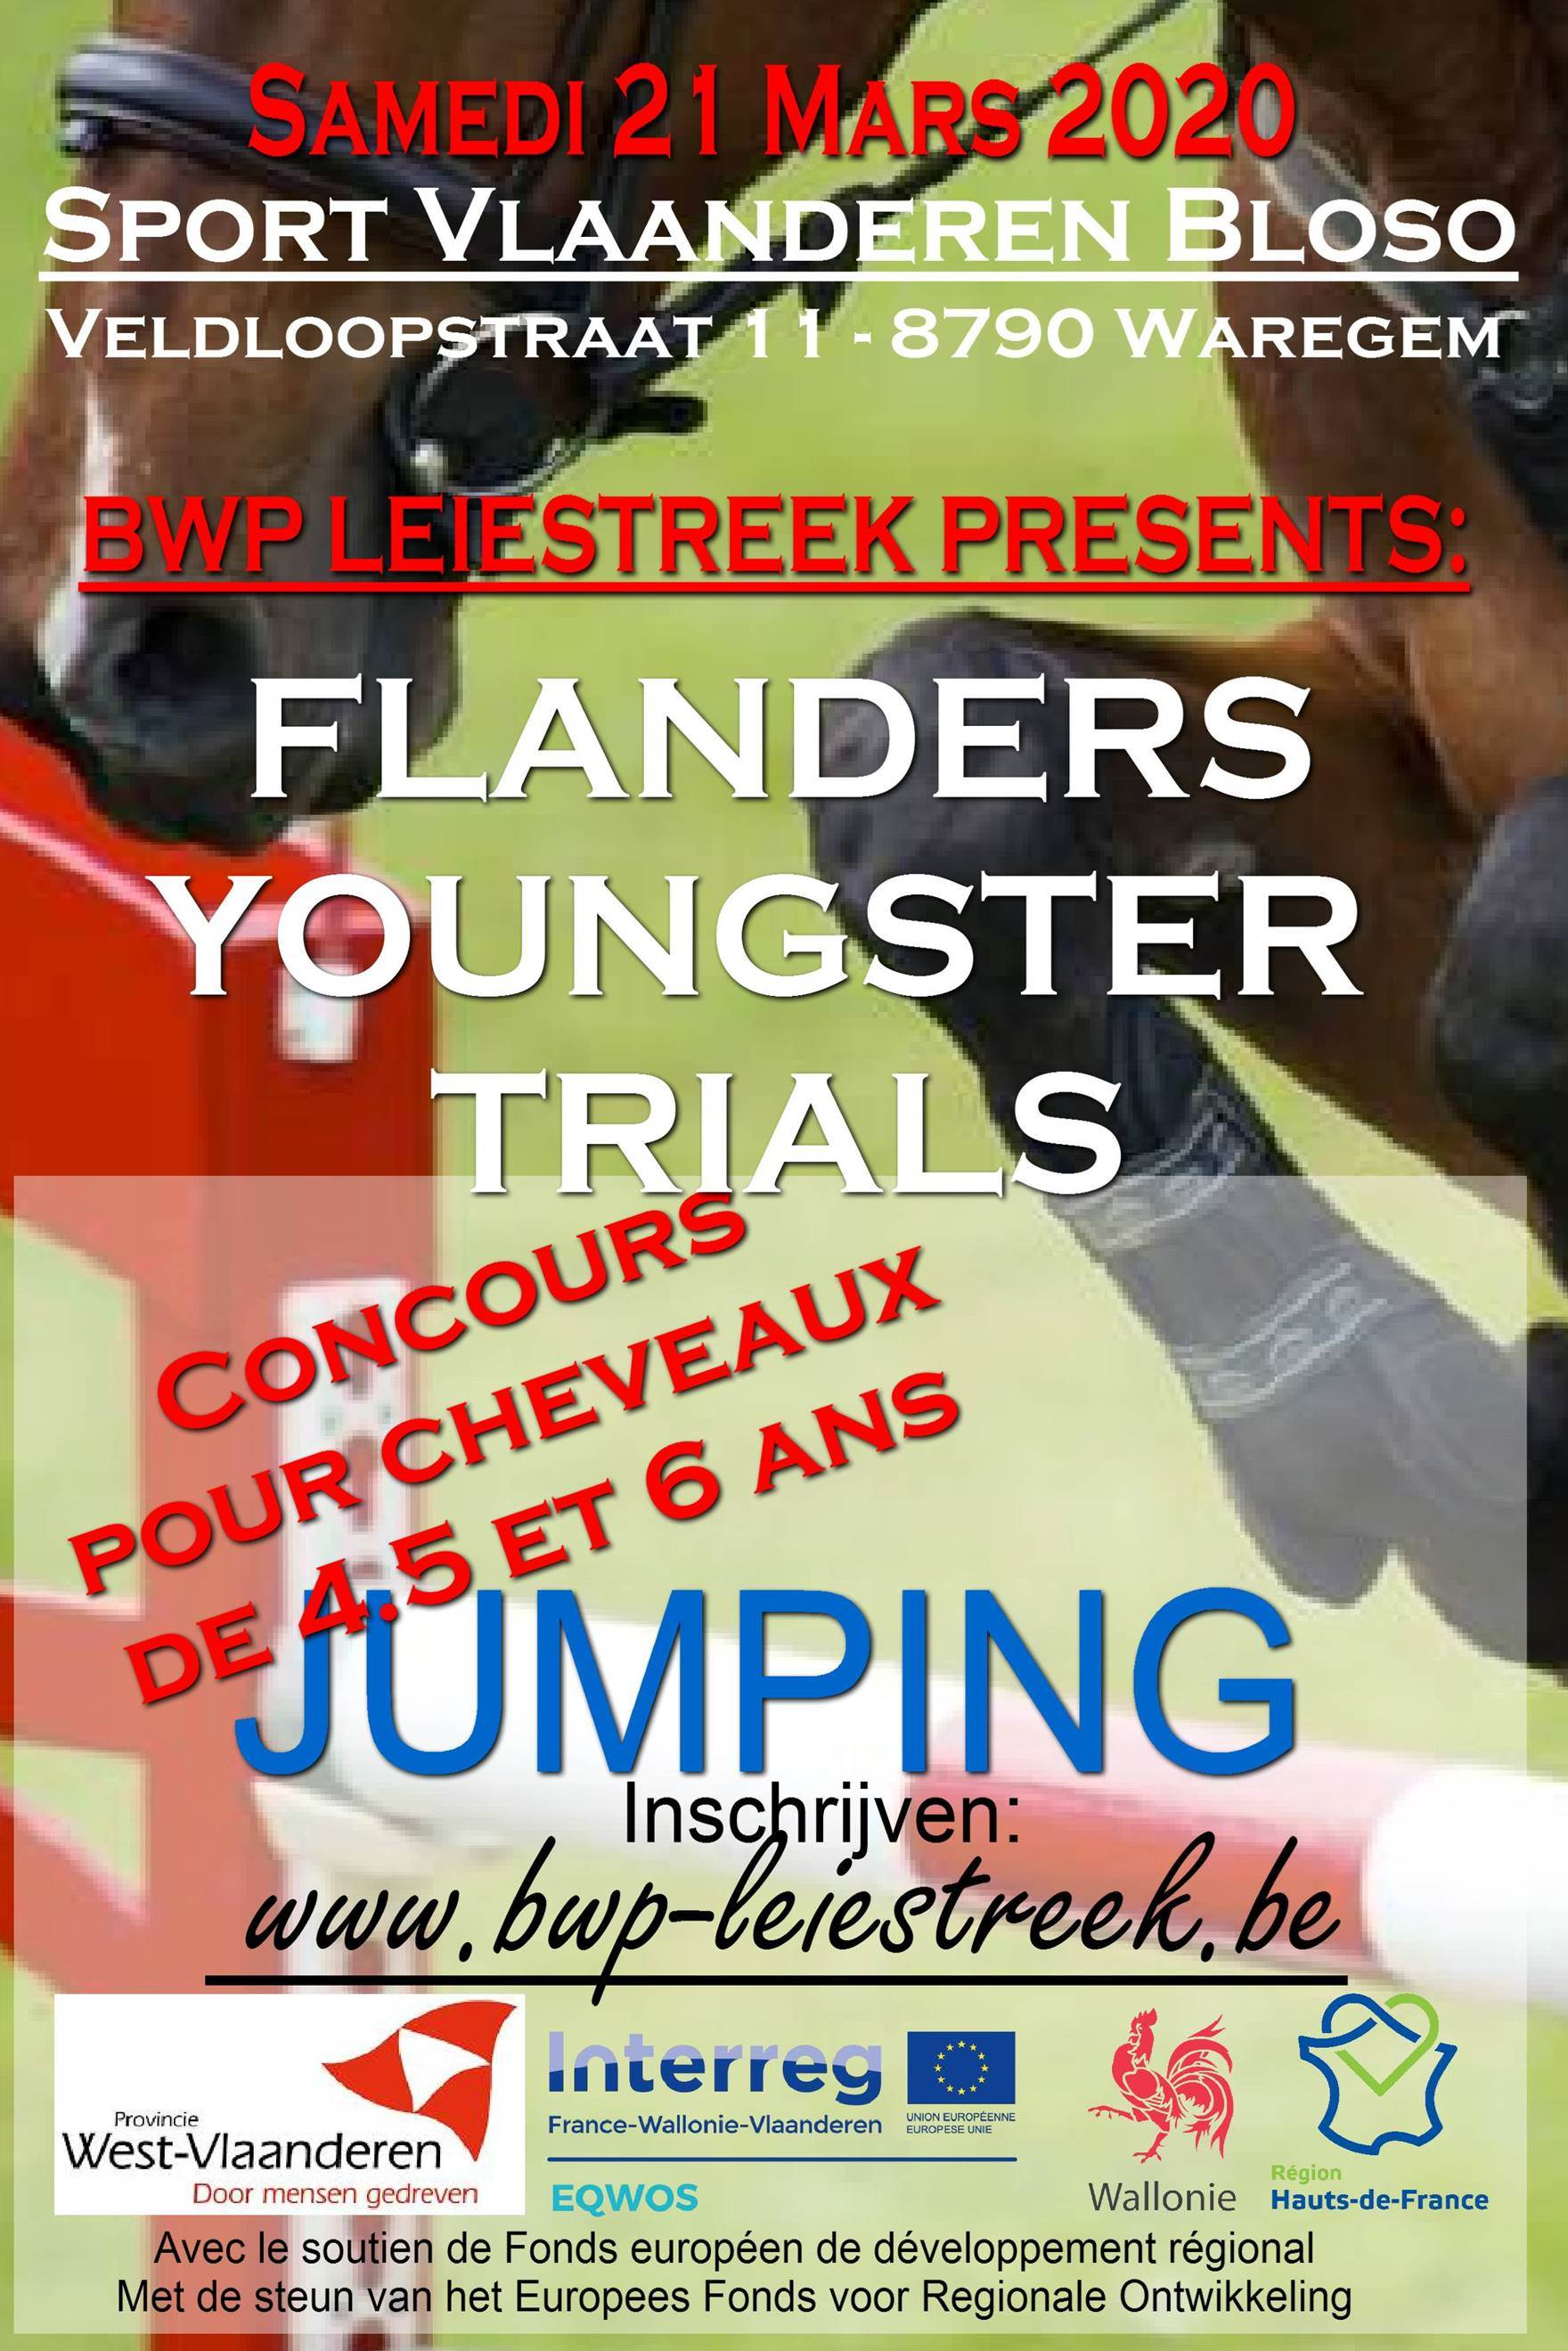 FlandersYougsterTrials